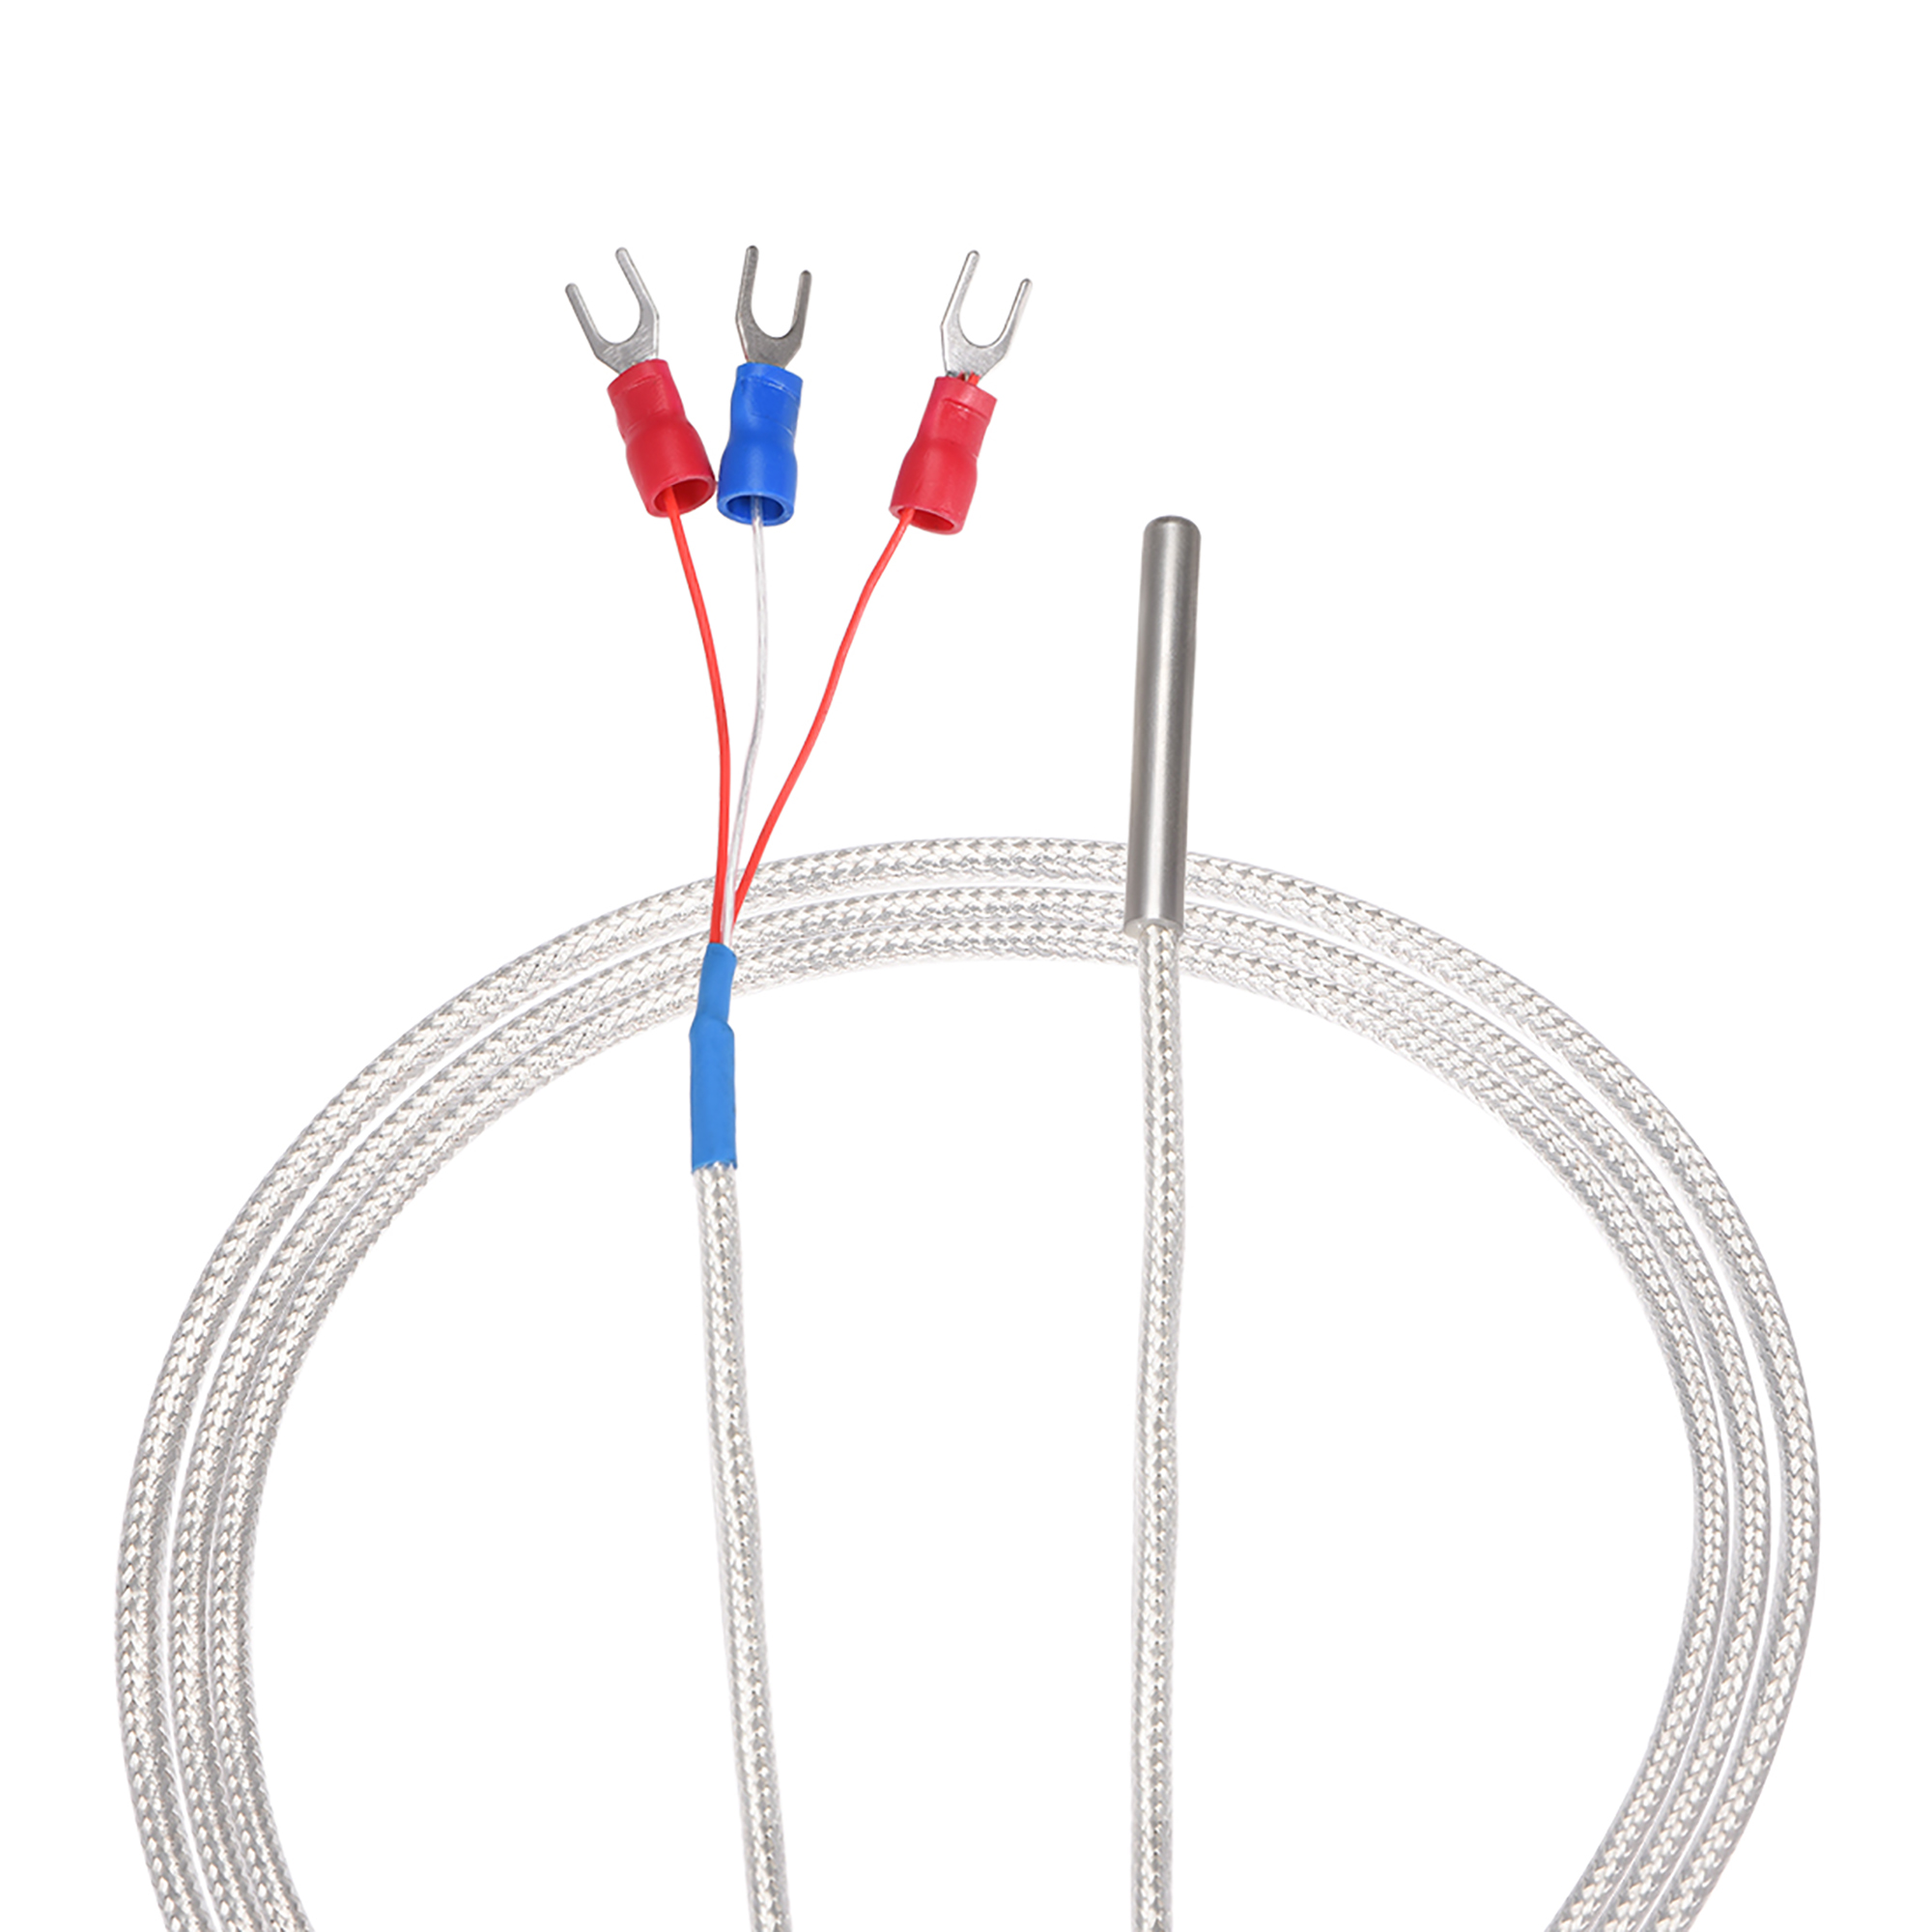 Pt100 Rtd Temperature Sensor Probe 3 Wire Cable